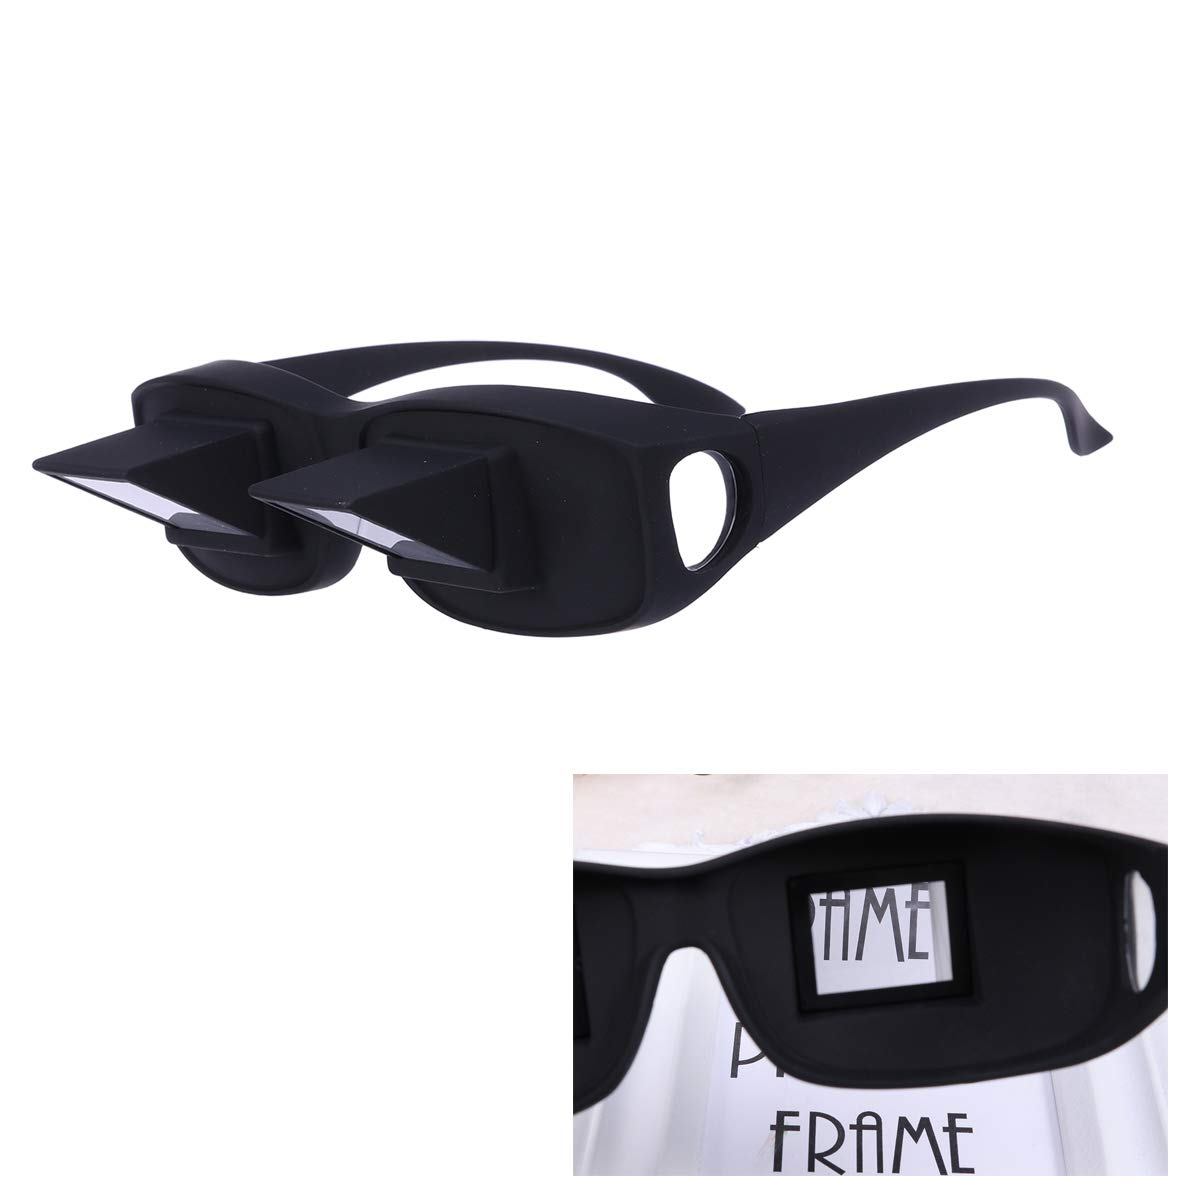 81548d73e95 Amazon.com  HEALIFTY Prism Glasses Horizontal Lazy Reading Glasses Lying  Down Large Size Bed Watching High Definition Prism Eye Glasses Spectacles  (Black)  ...